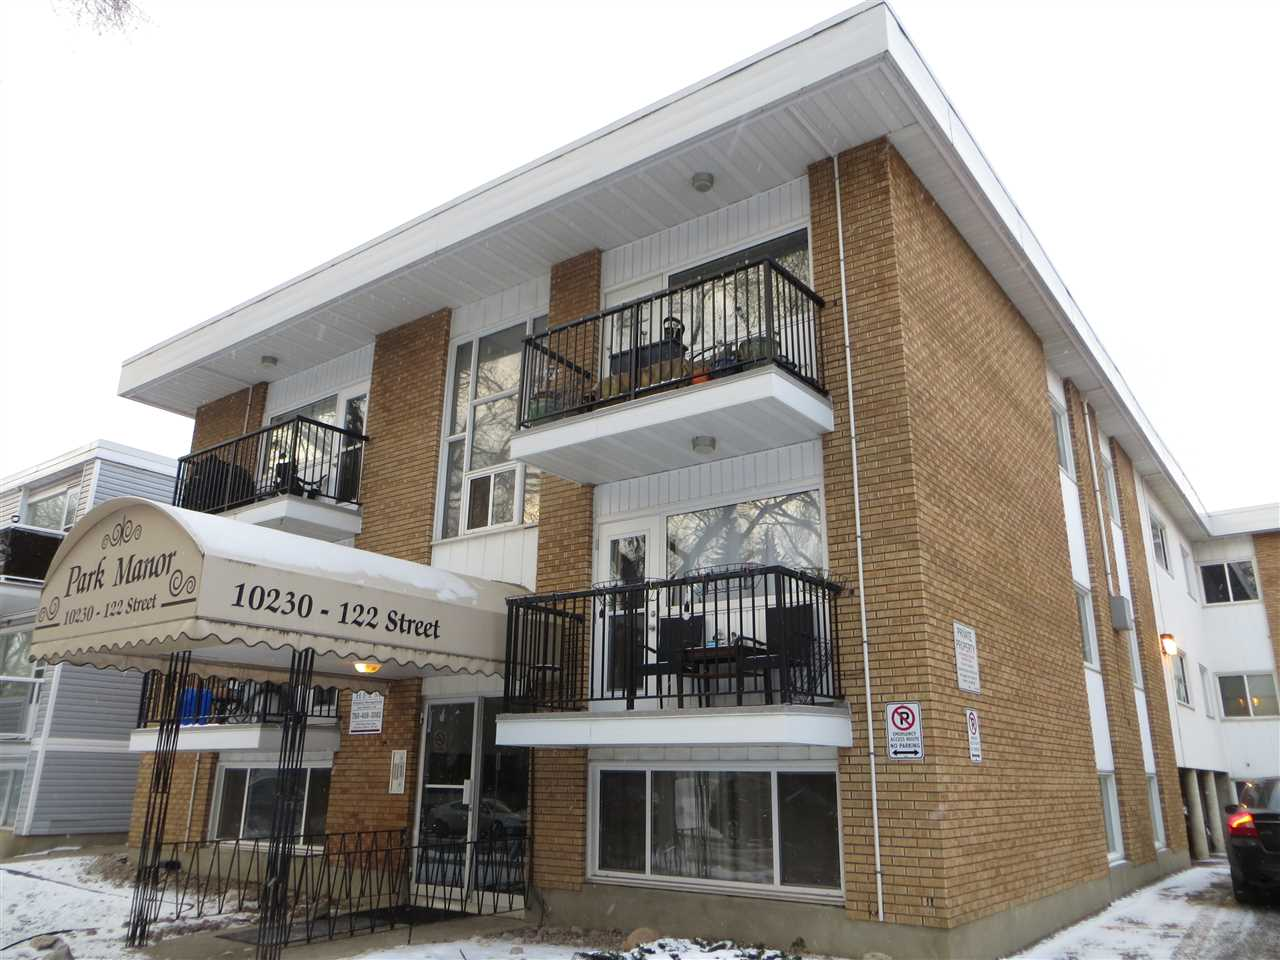 Prime location across from the redeveloped Paul Kane Park! Seller Financing available with no qualifying!  Your mortgage payment is as low as $405 per month with a 3.35% interest rate.  Move in or rent out!  The property does have positive cash flow covering mortgage, condo fees and property taxes with a rent of $825 per month. This 1 bedroom basement/main floor unit is in a prime Oliver location close to shopping and parkland. Well laid out unit with in suite storage, white galley kitchen, dining area and large windows. Added convenience is laundry on the same floor as the unit. Excellent opportunity to get into the market or invest without having to go through the hassle of qualifying under the tighter bank rules.  Let your tenant pay down your mortgage for you.  Vacant possession is possible for November 1.